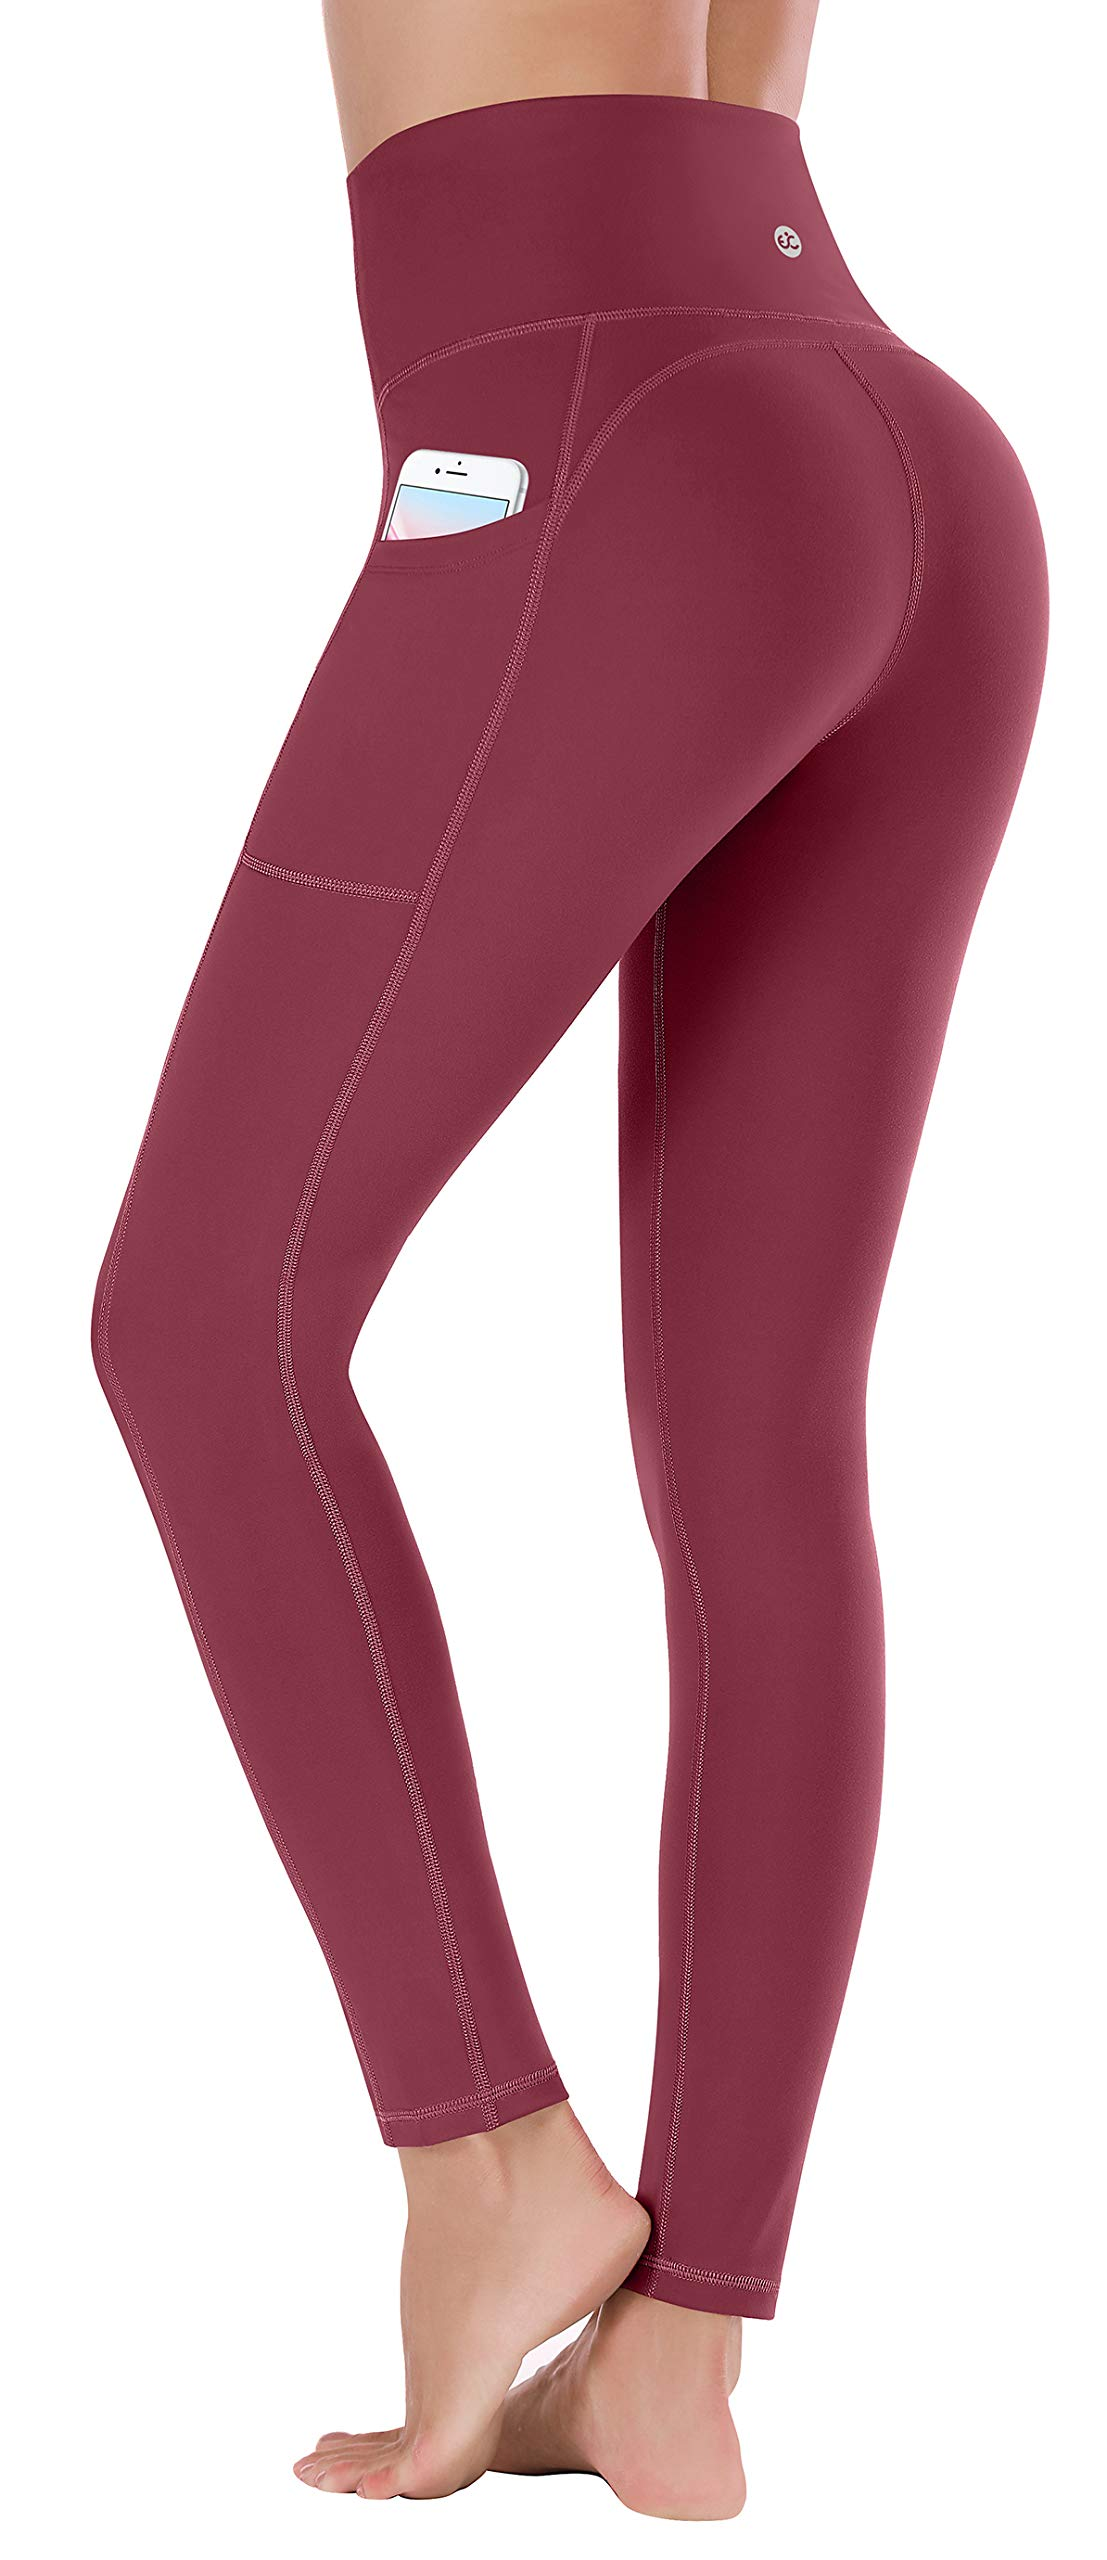 Ewedoos Women's Yoga Pants with Pockets - Leggings with Pockets, High Waist Tummy Control Non See-Through Workout Pants (Ew320 Maroon, Medium) by Ewedoos